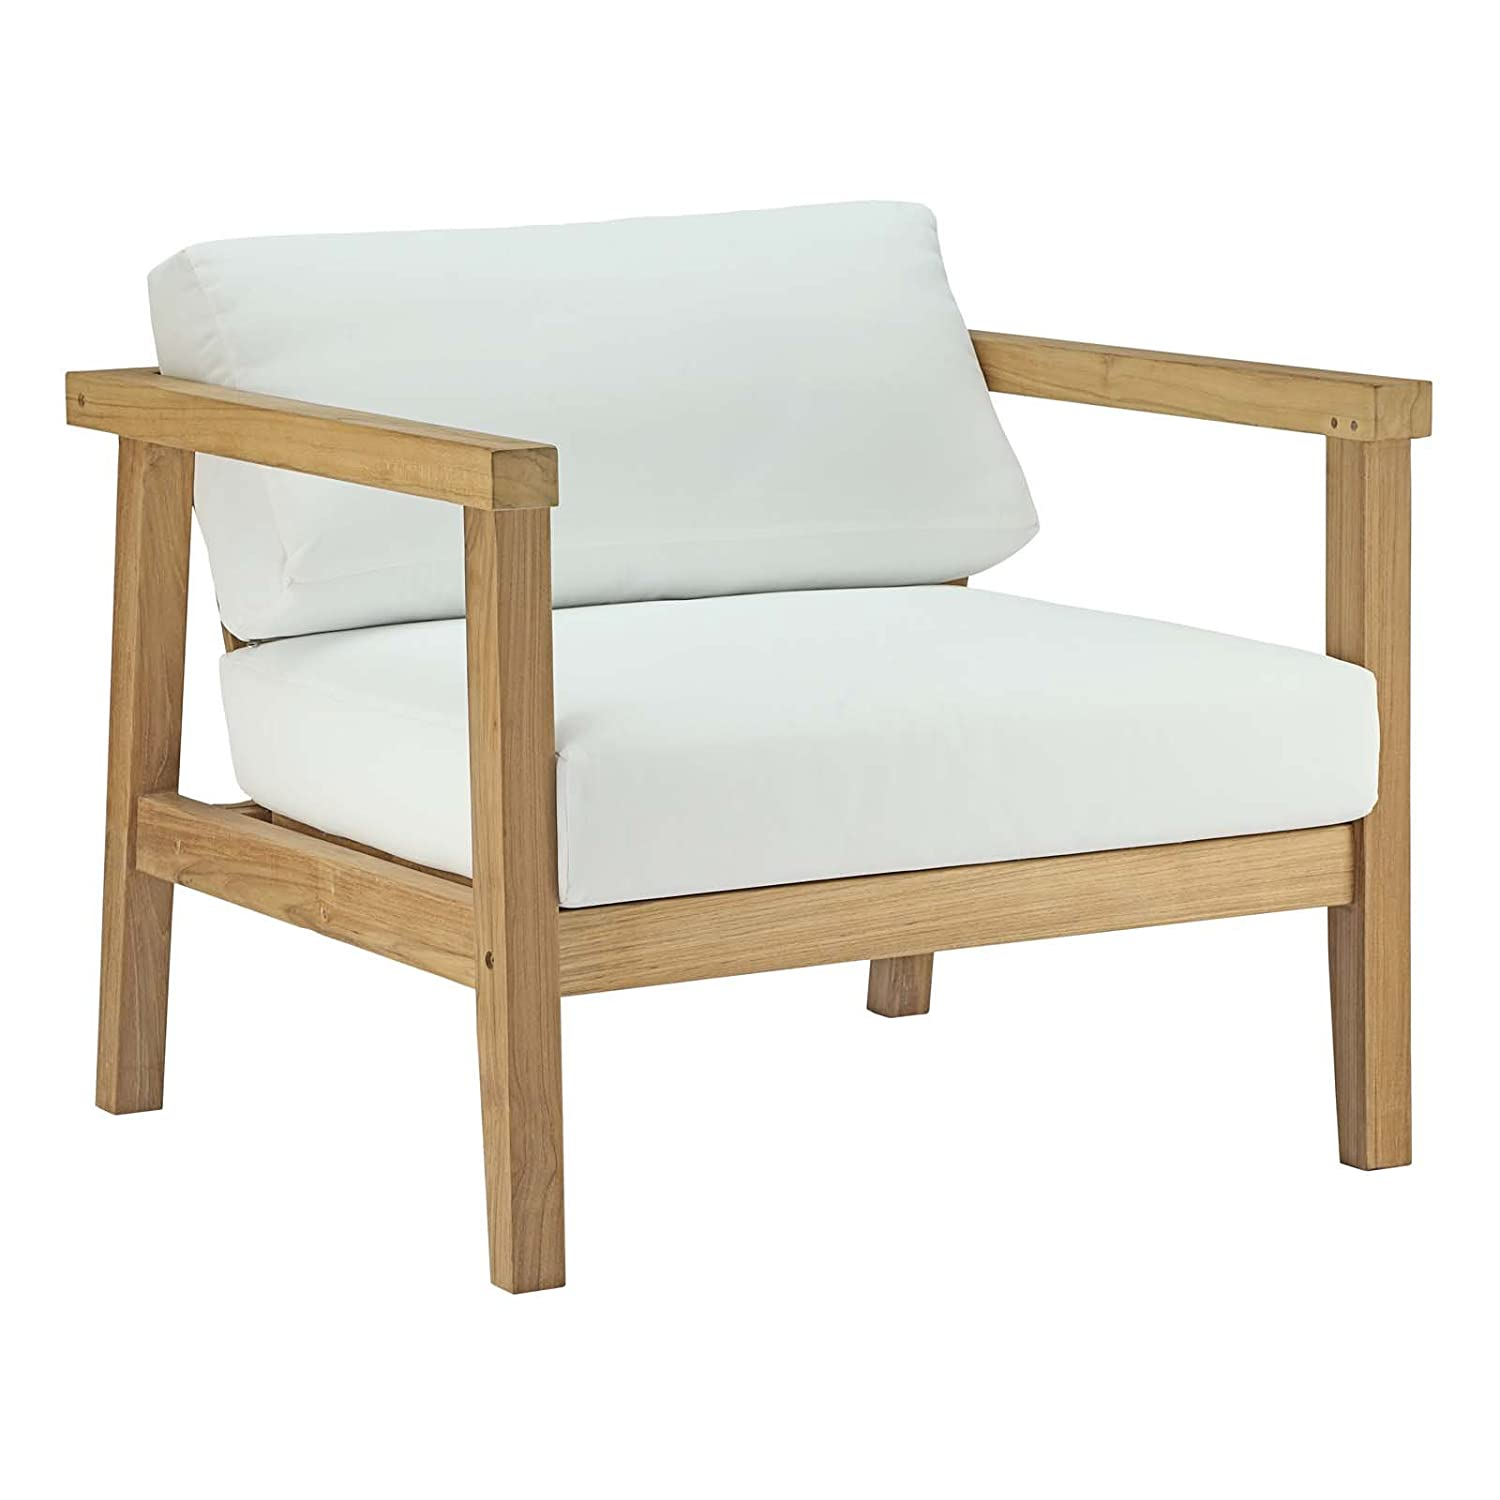 Amazon com modway bayport teak wood outdoor patio armchair in natural white garden outdoor